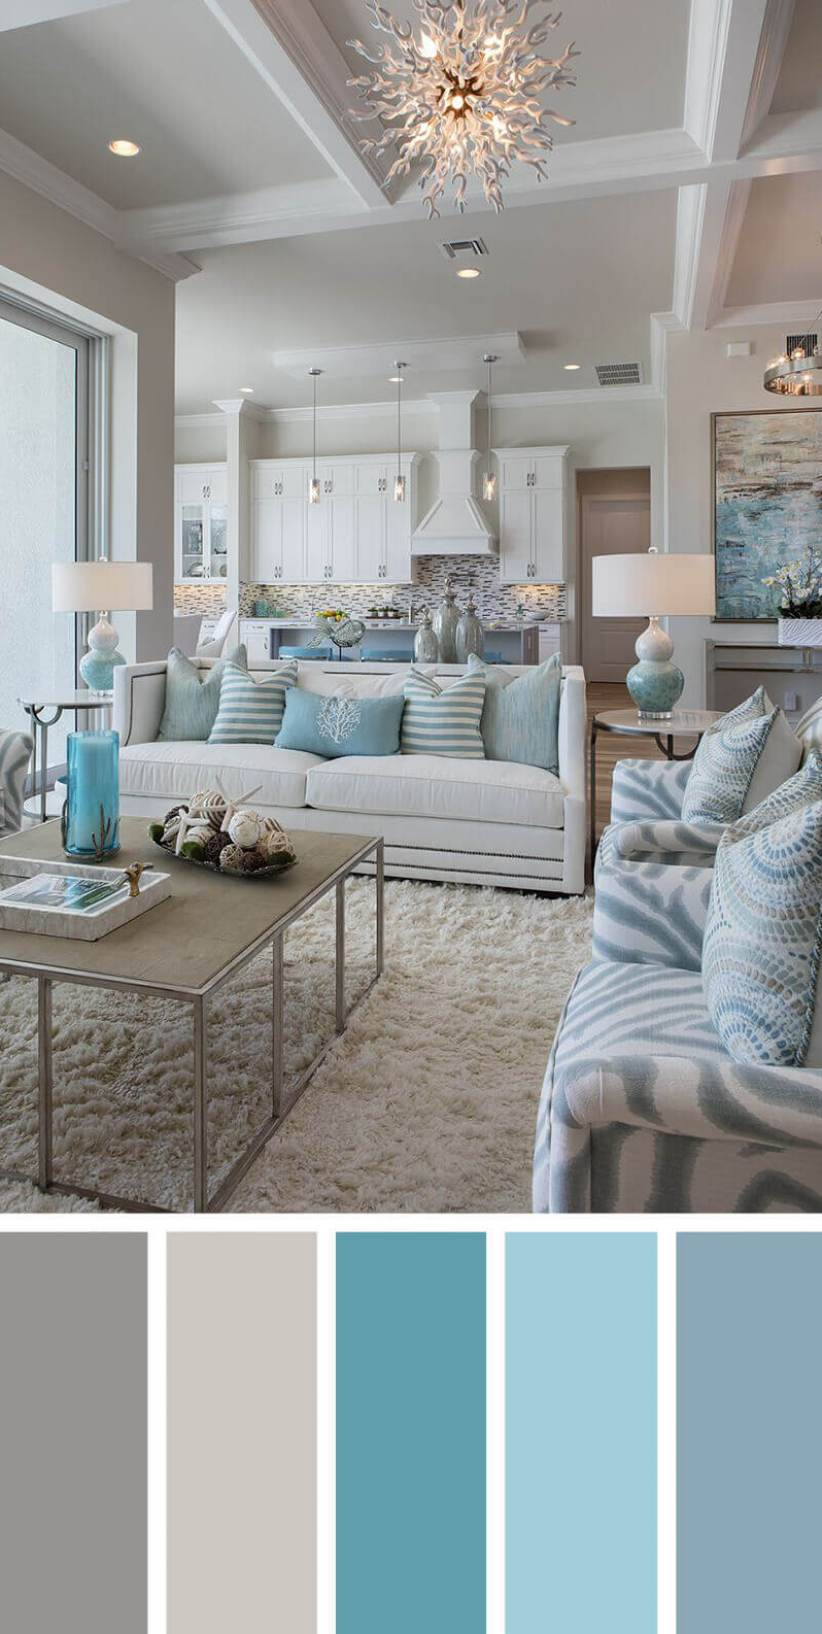 Beautiful color suggestions for living room #livingroomcolorschemes #livingroomcolorcombination